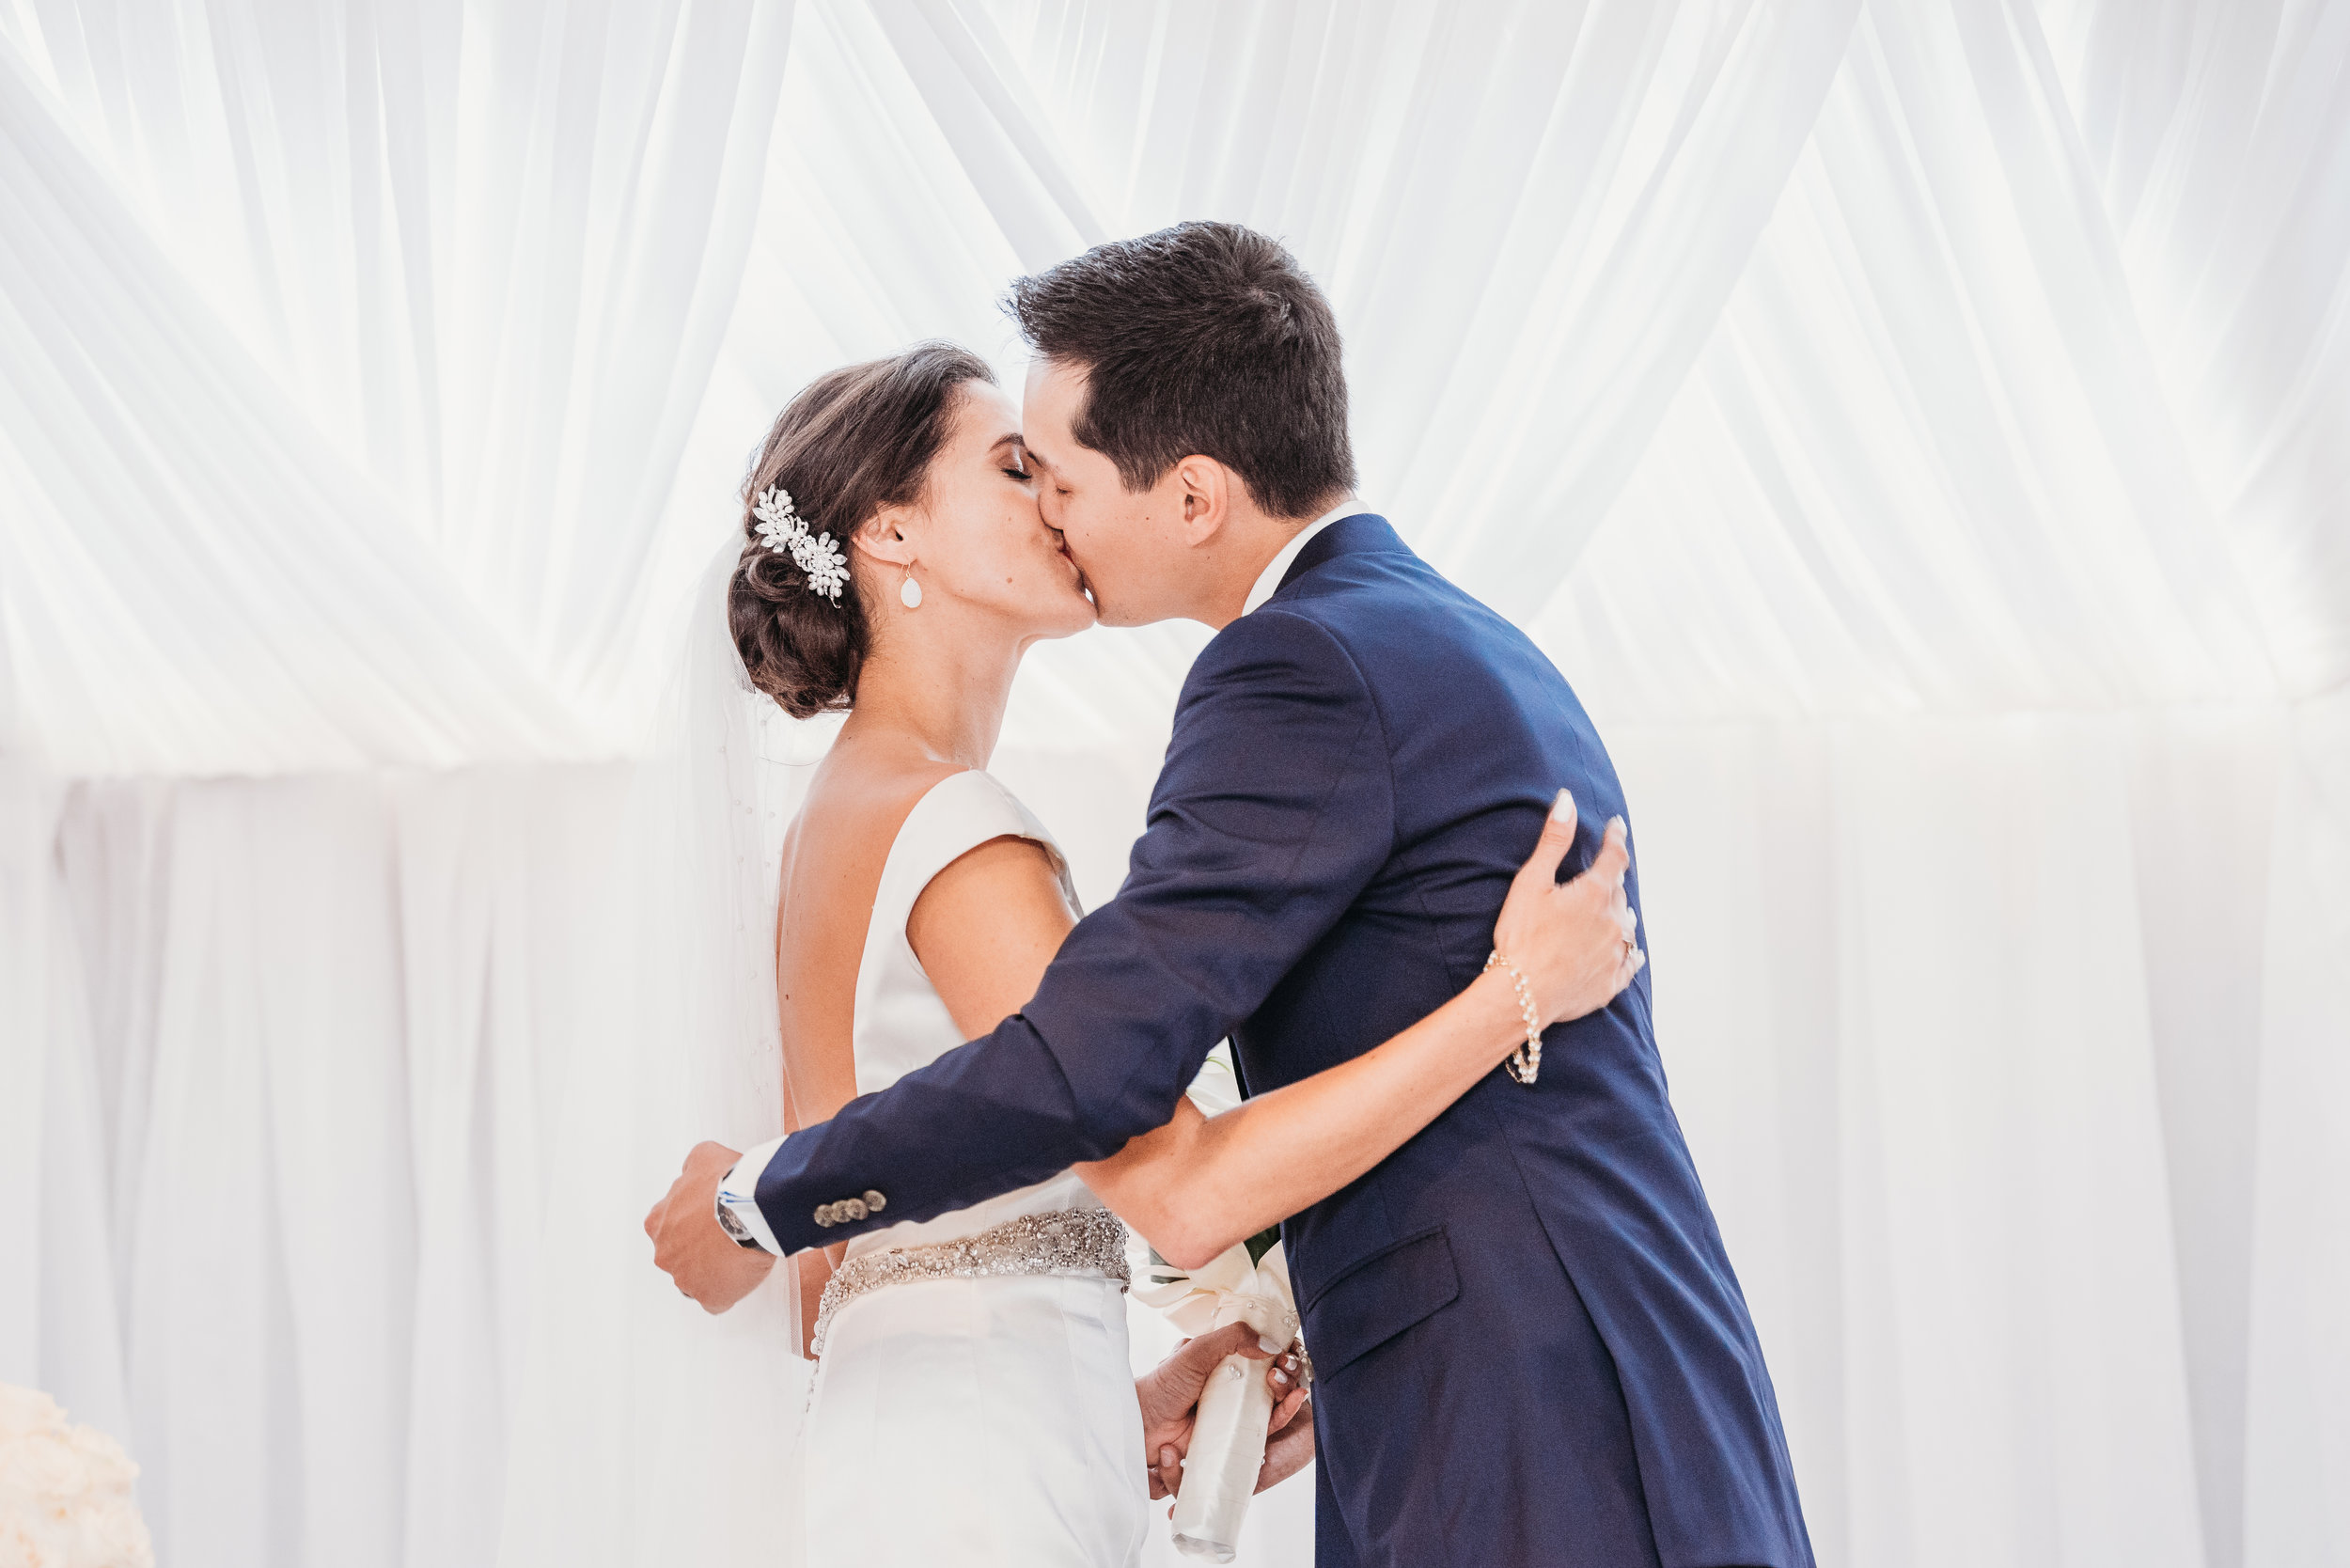 bride-groom-first-kiss-eglington-grand-wedding-by-willow-birch-photo-toronto-documentary-wedding-photographers.jpg